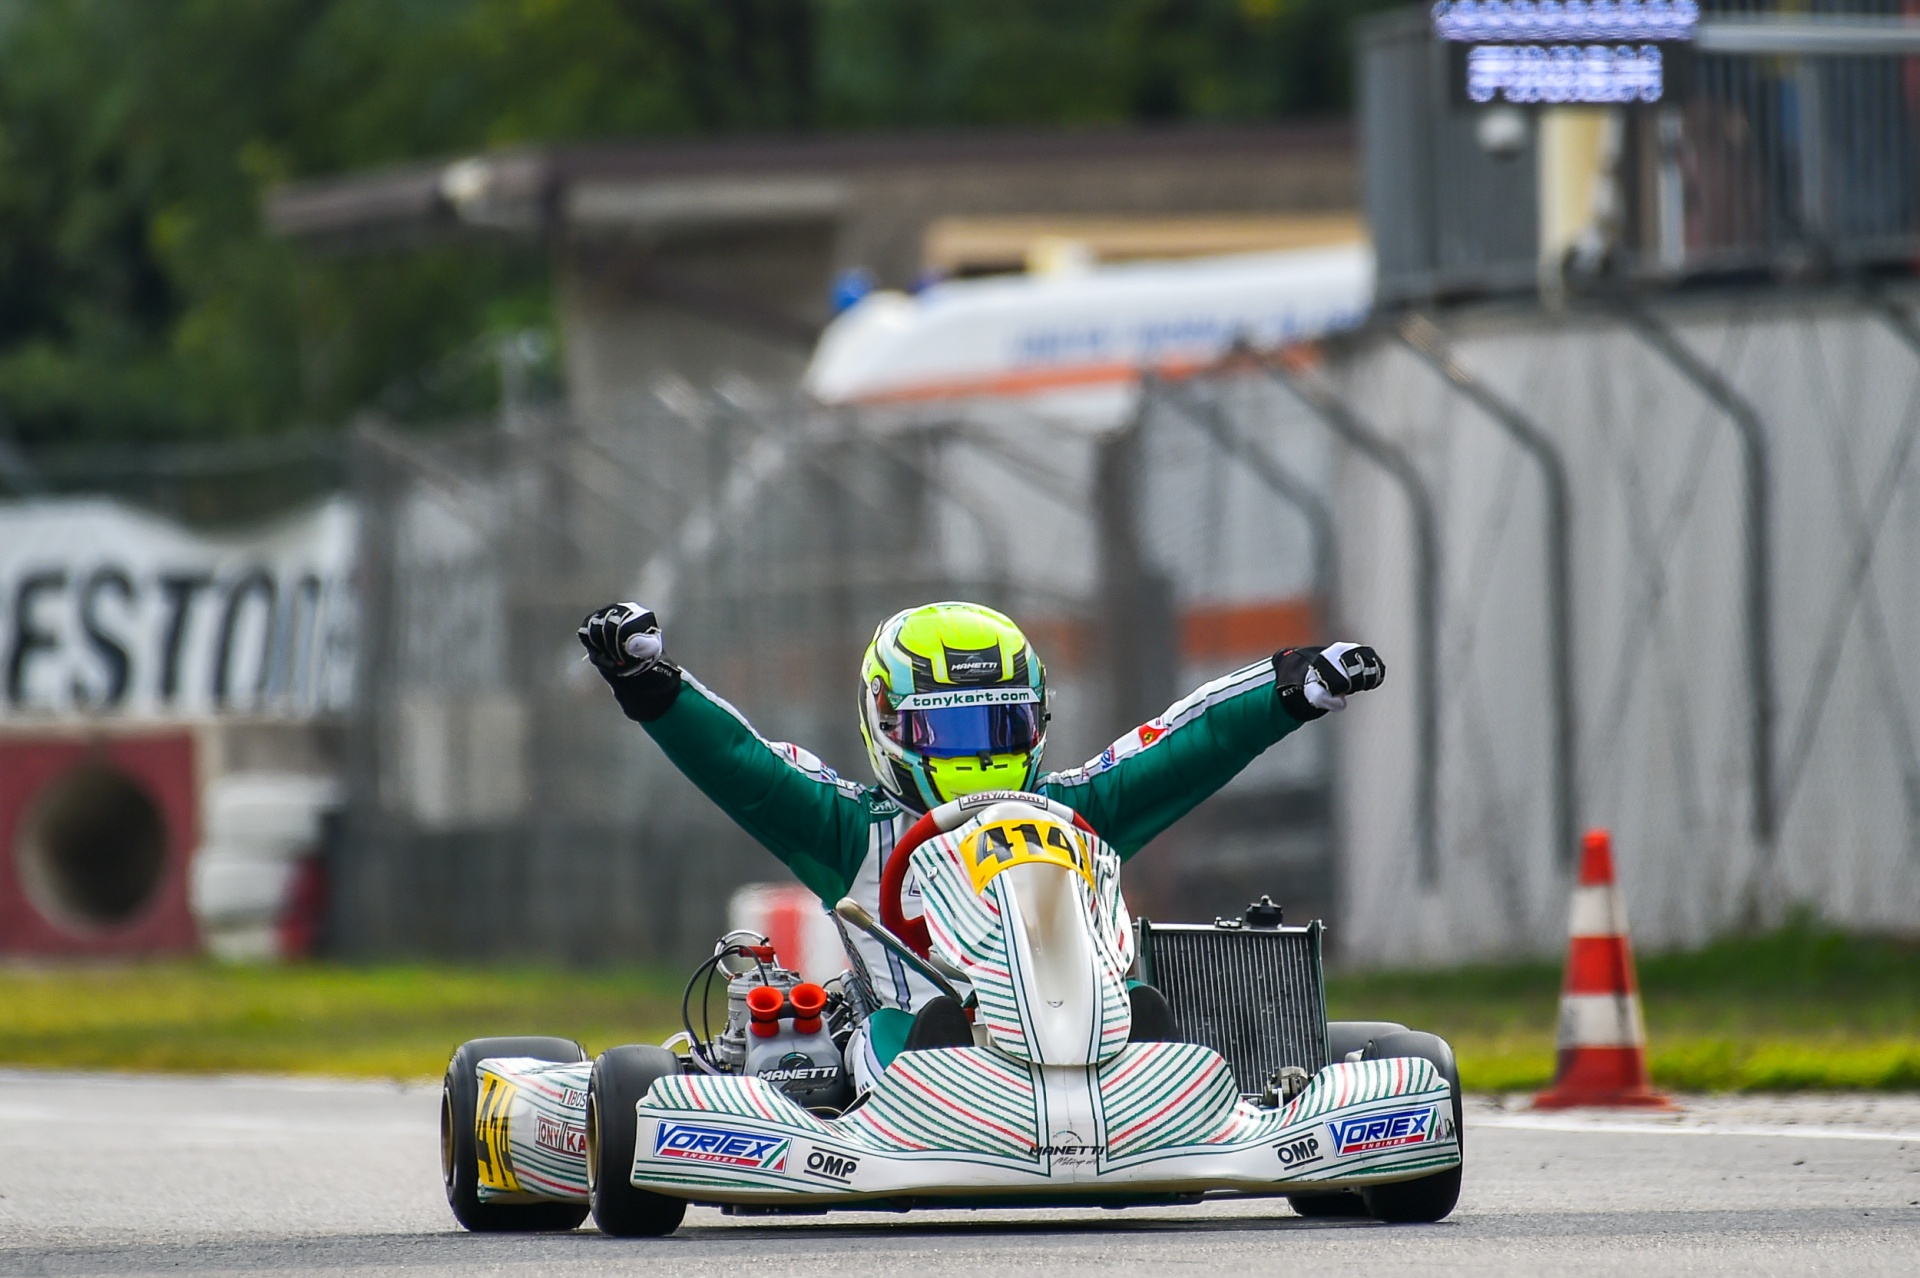 Manetti Motorsport wins the Autumn Trophy with Luca Bosco